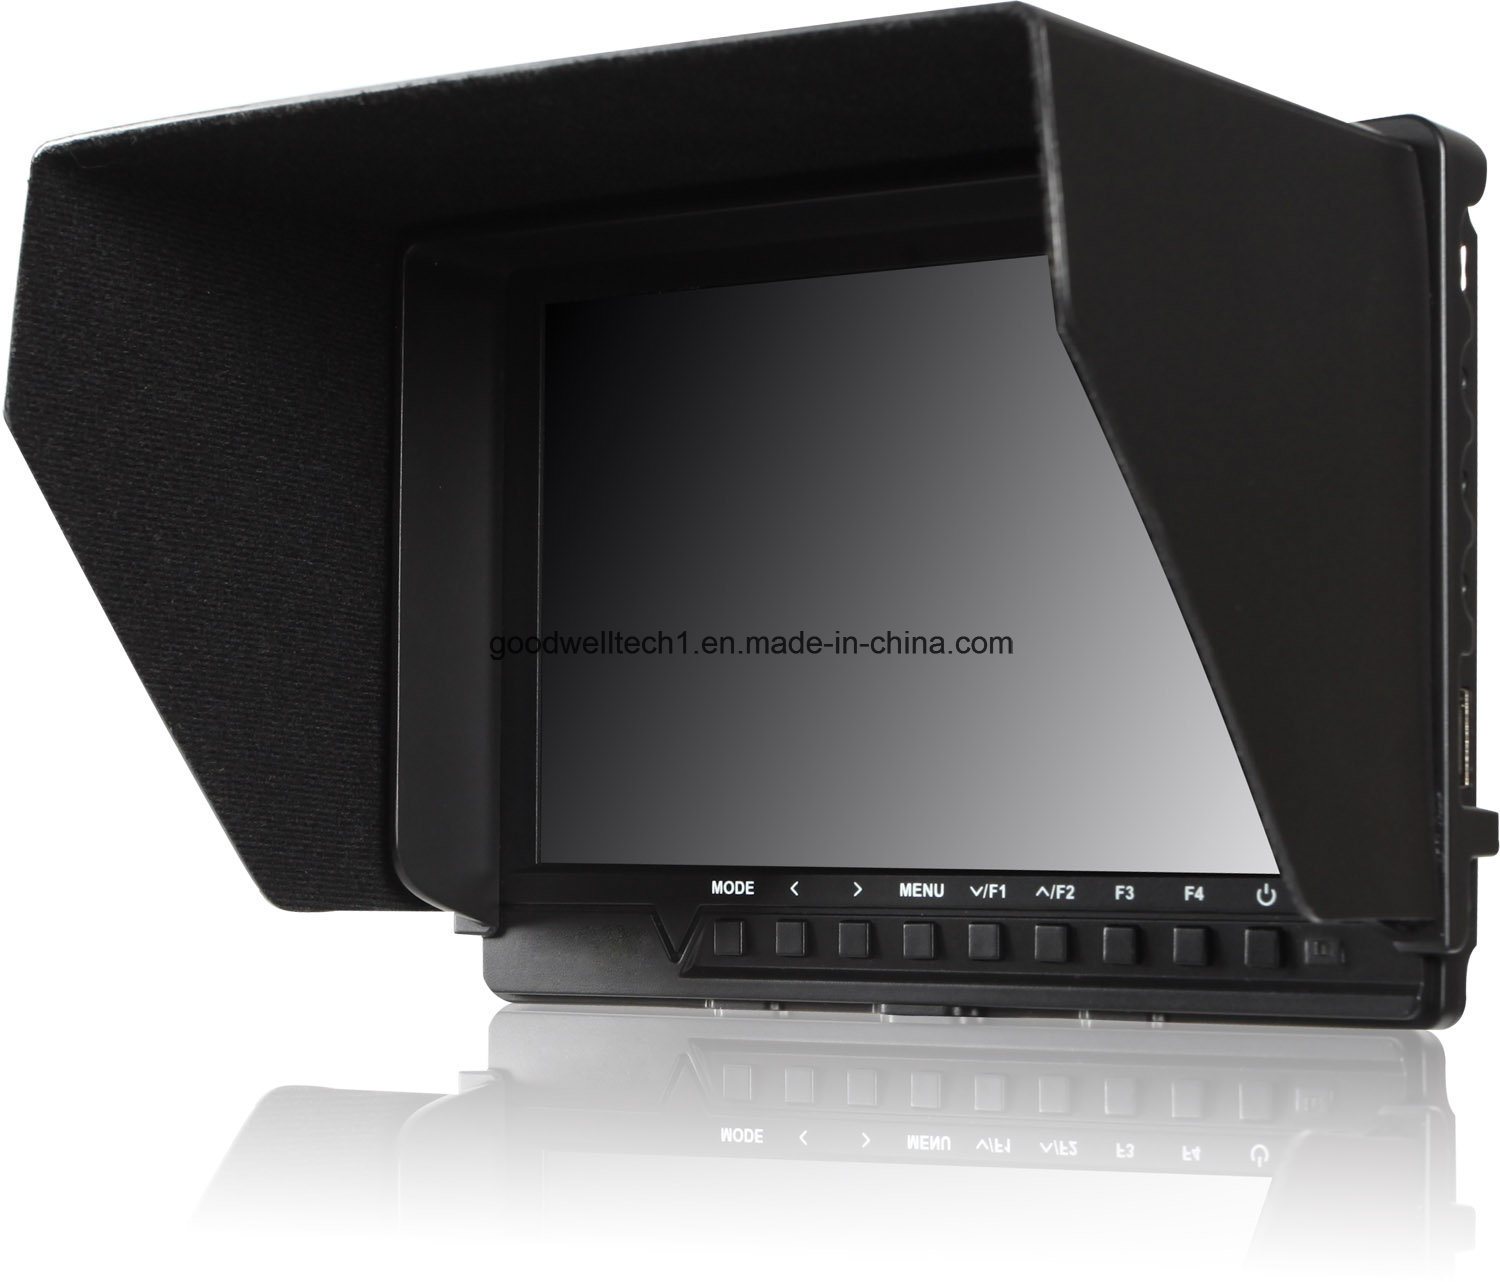 1200: 1 HDMI Input Camera 7 Inch LCD Screen